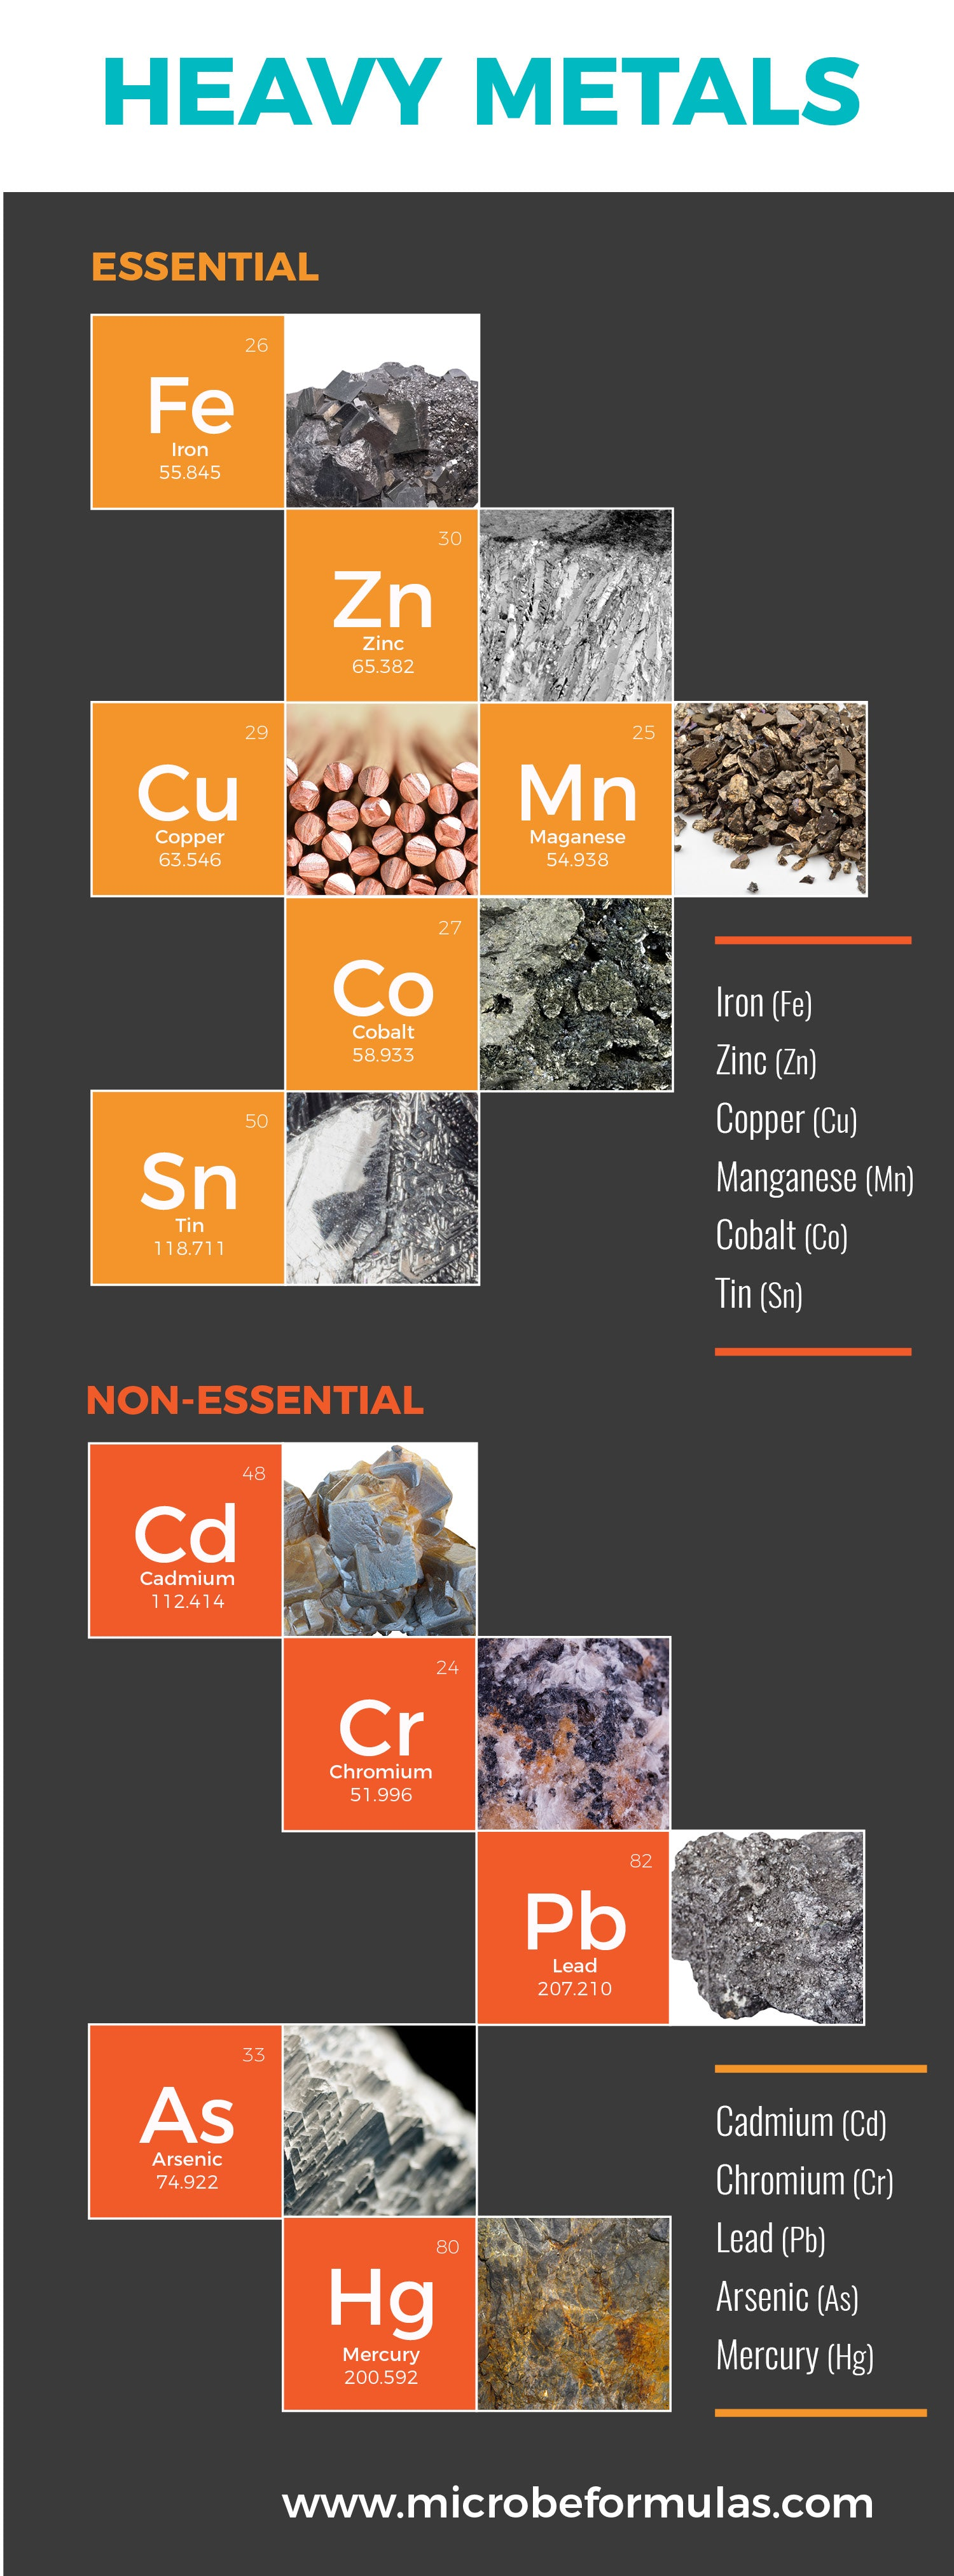 Heavy Metals Essential vs Non-essential